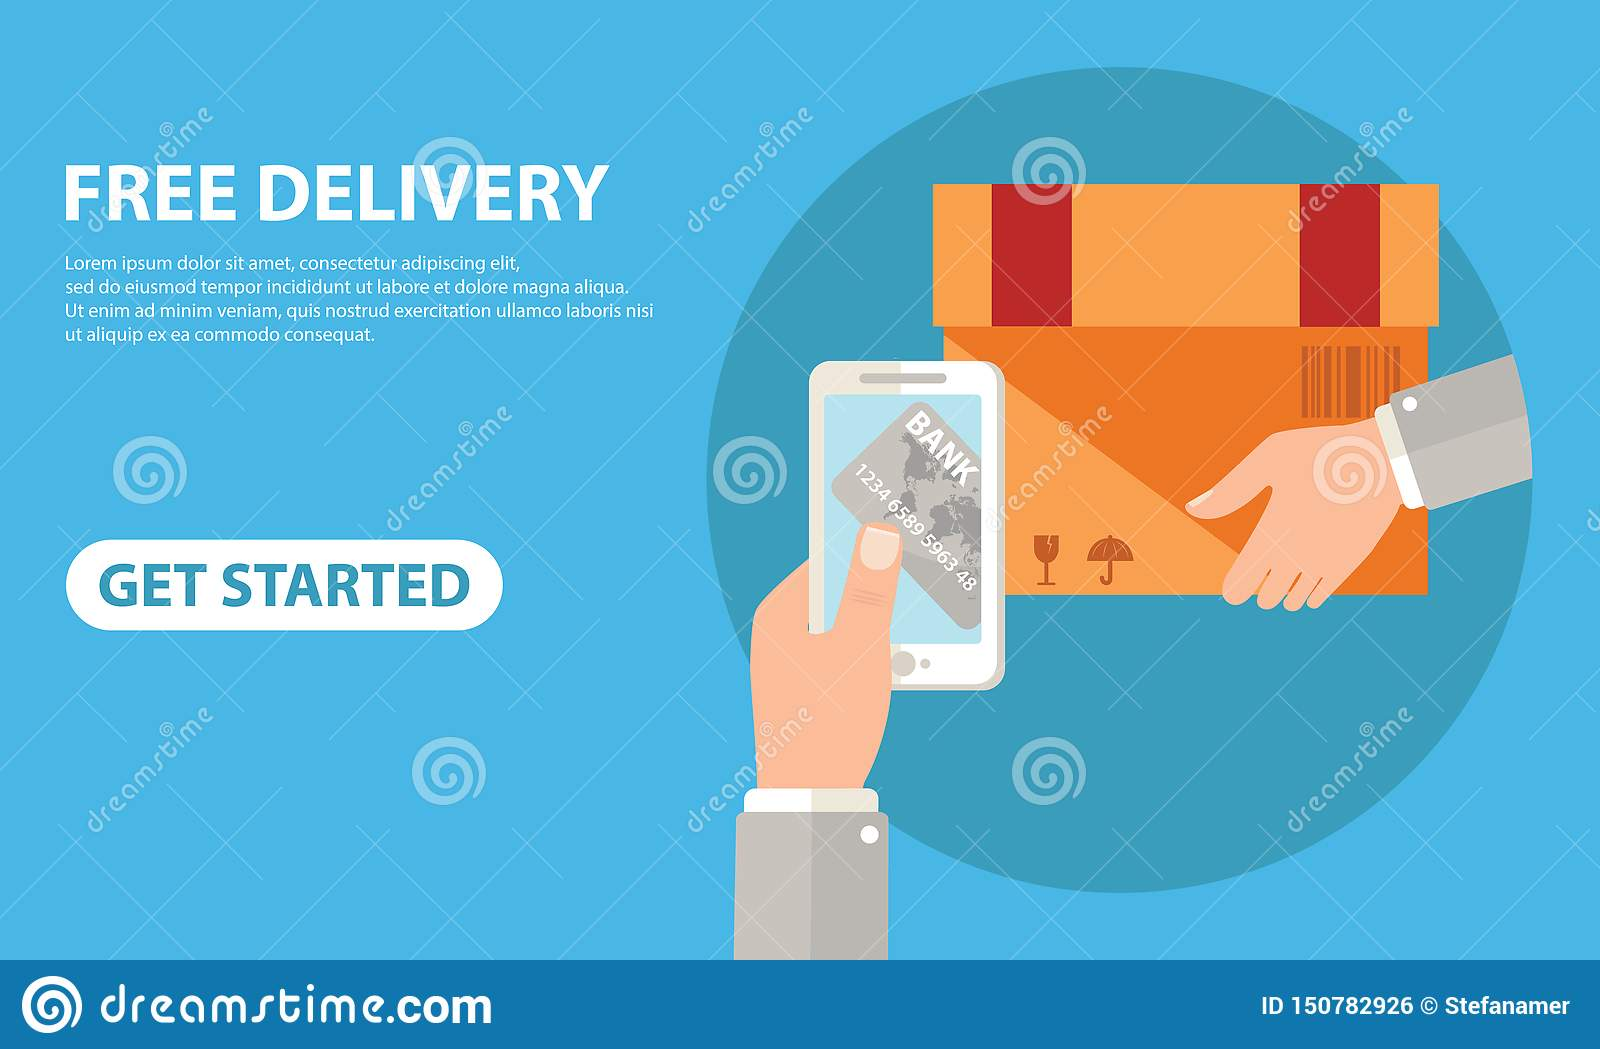 free delivery for clients how pay by credit card via